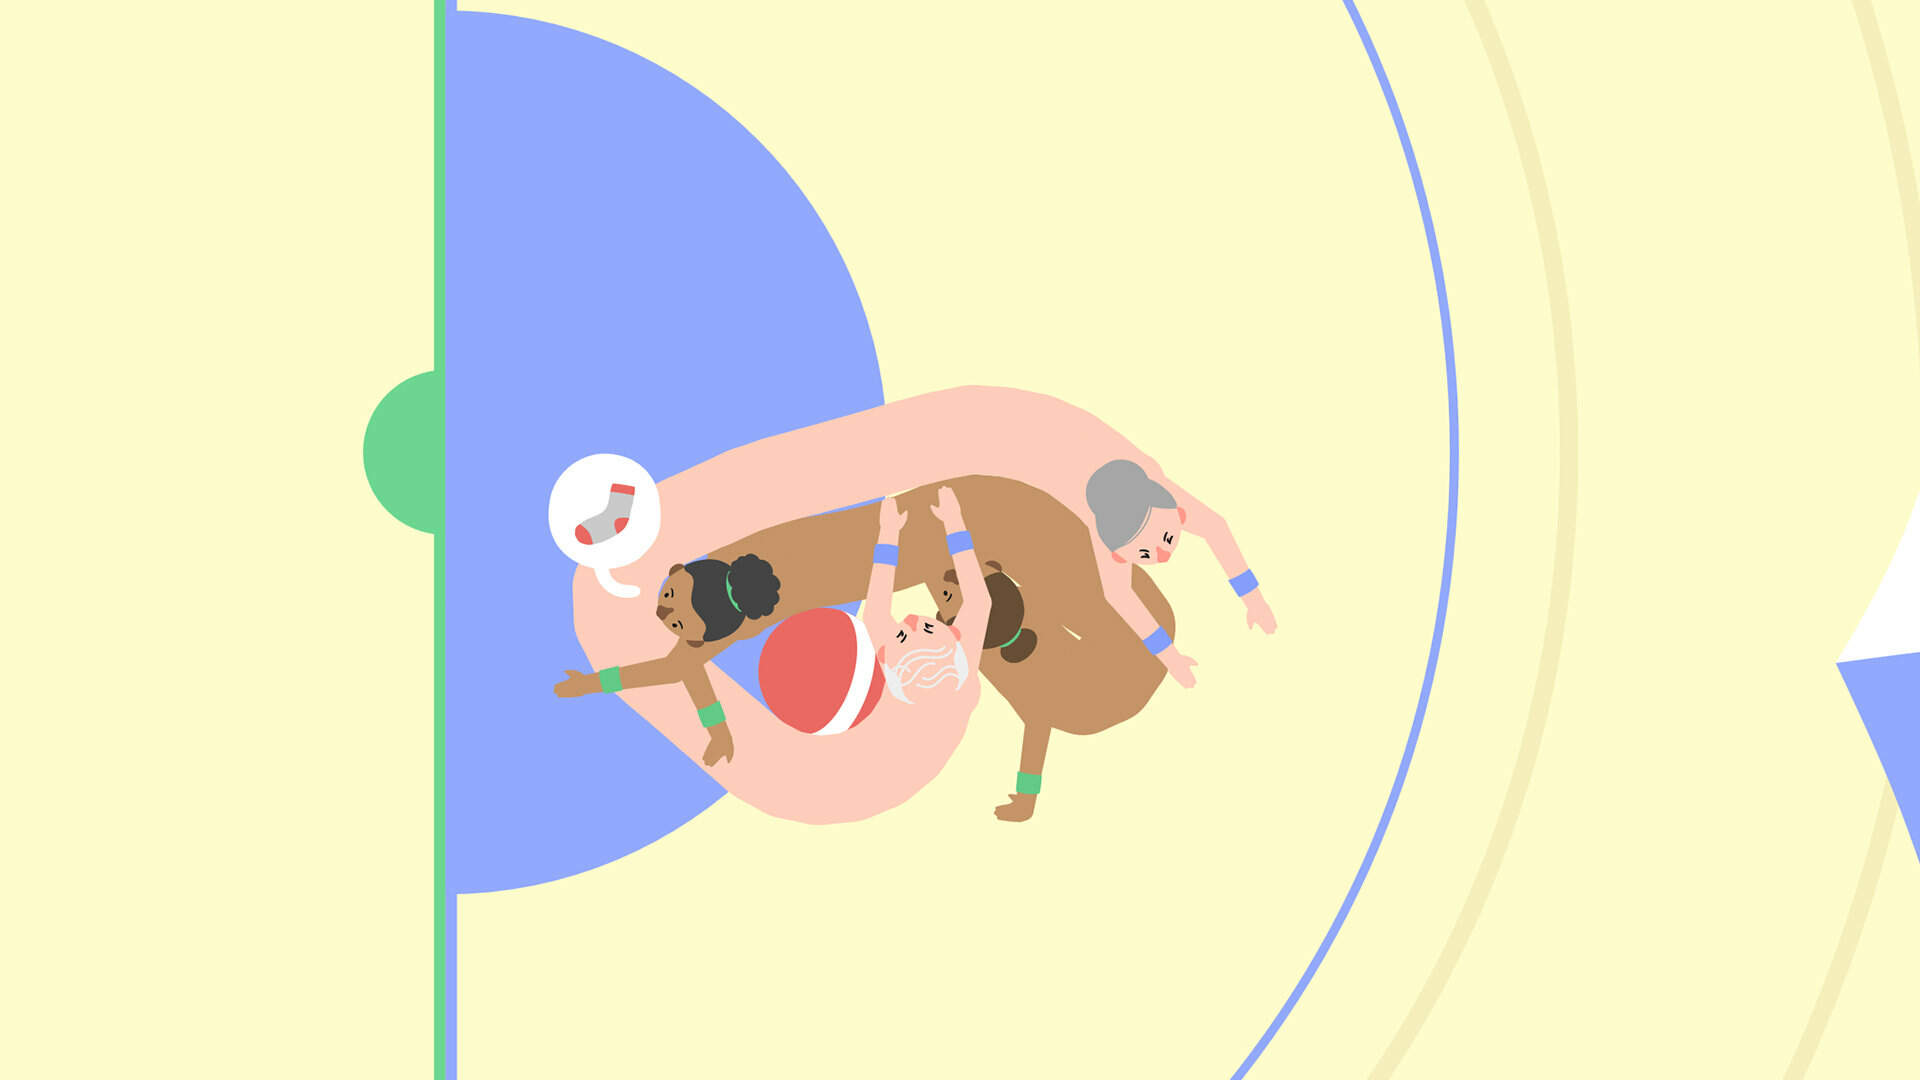 Push Me Pull You PS4 Review: Multiplayer Weirdness